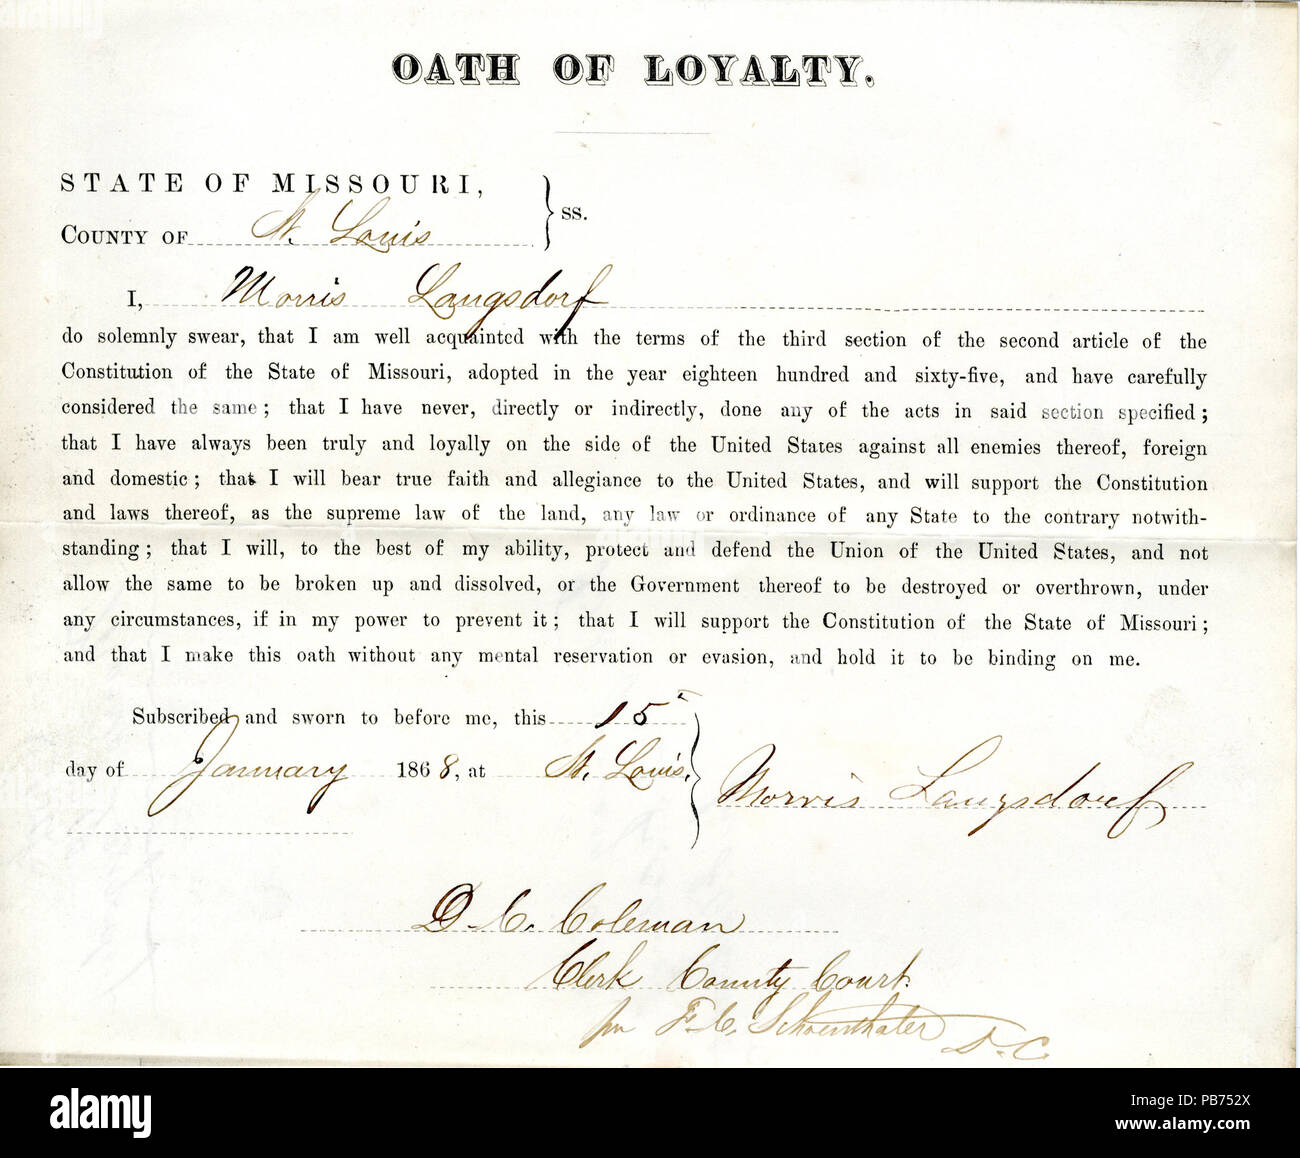 953 Loyalty oath of Morris Langsdorf of Missouri, County of St. Louis - Stock Image